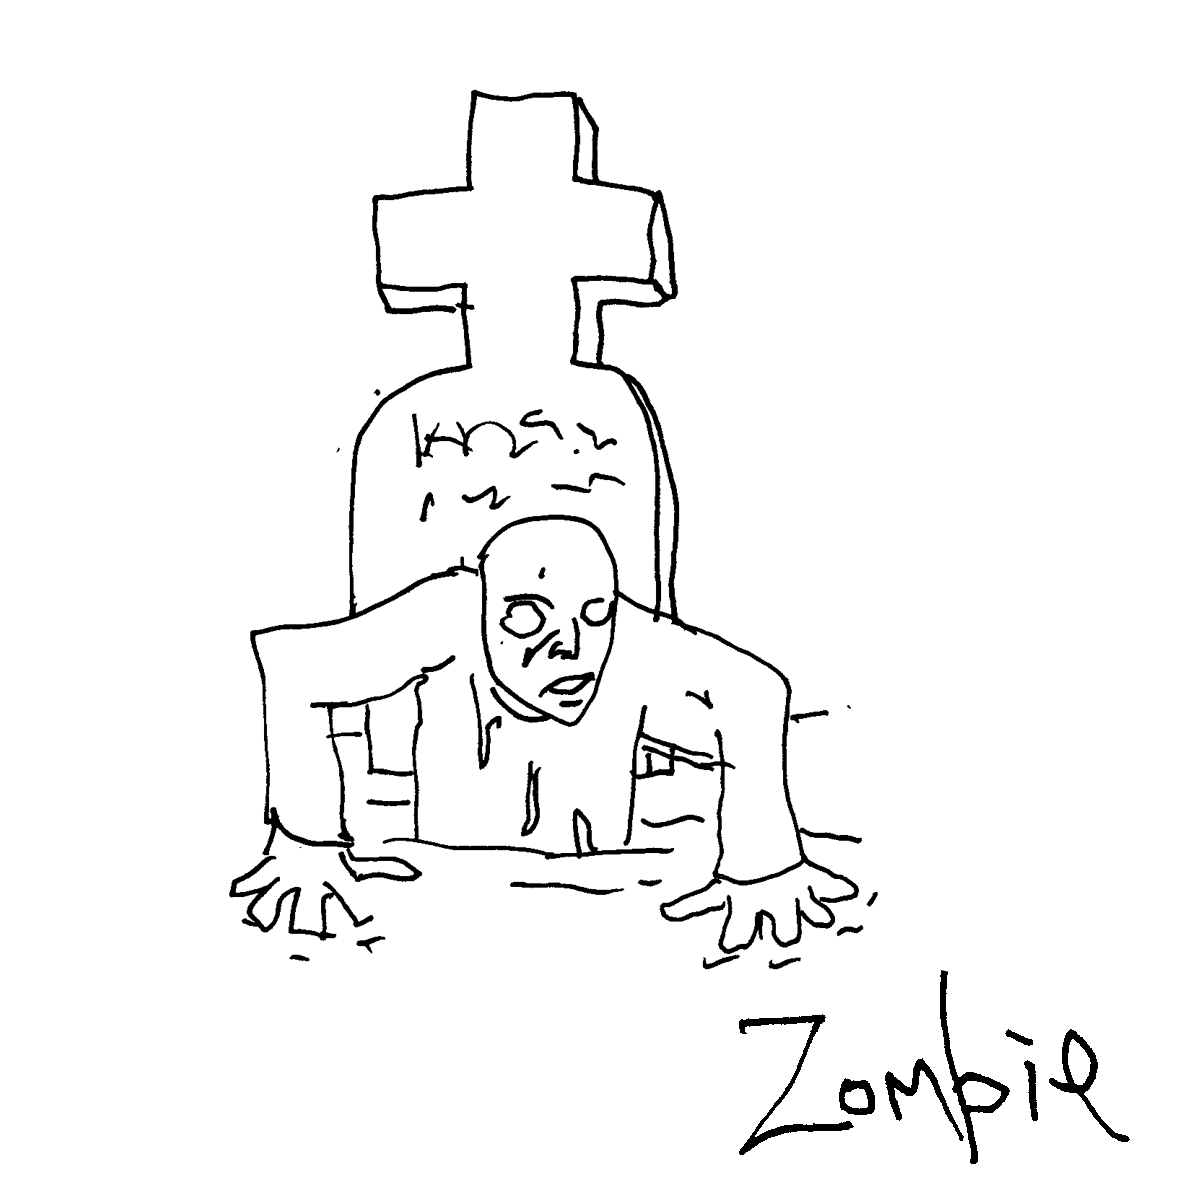 zombie emerges cartoon doodle